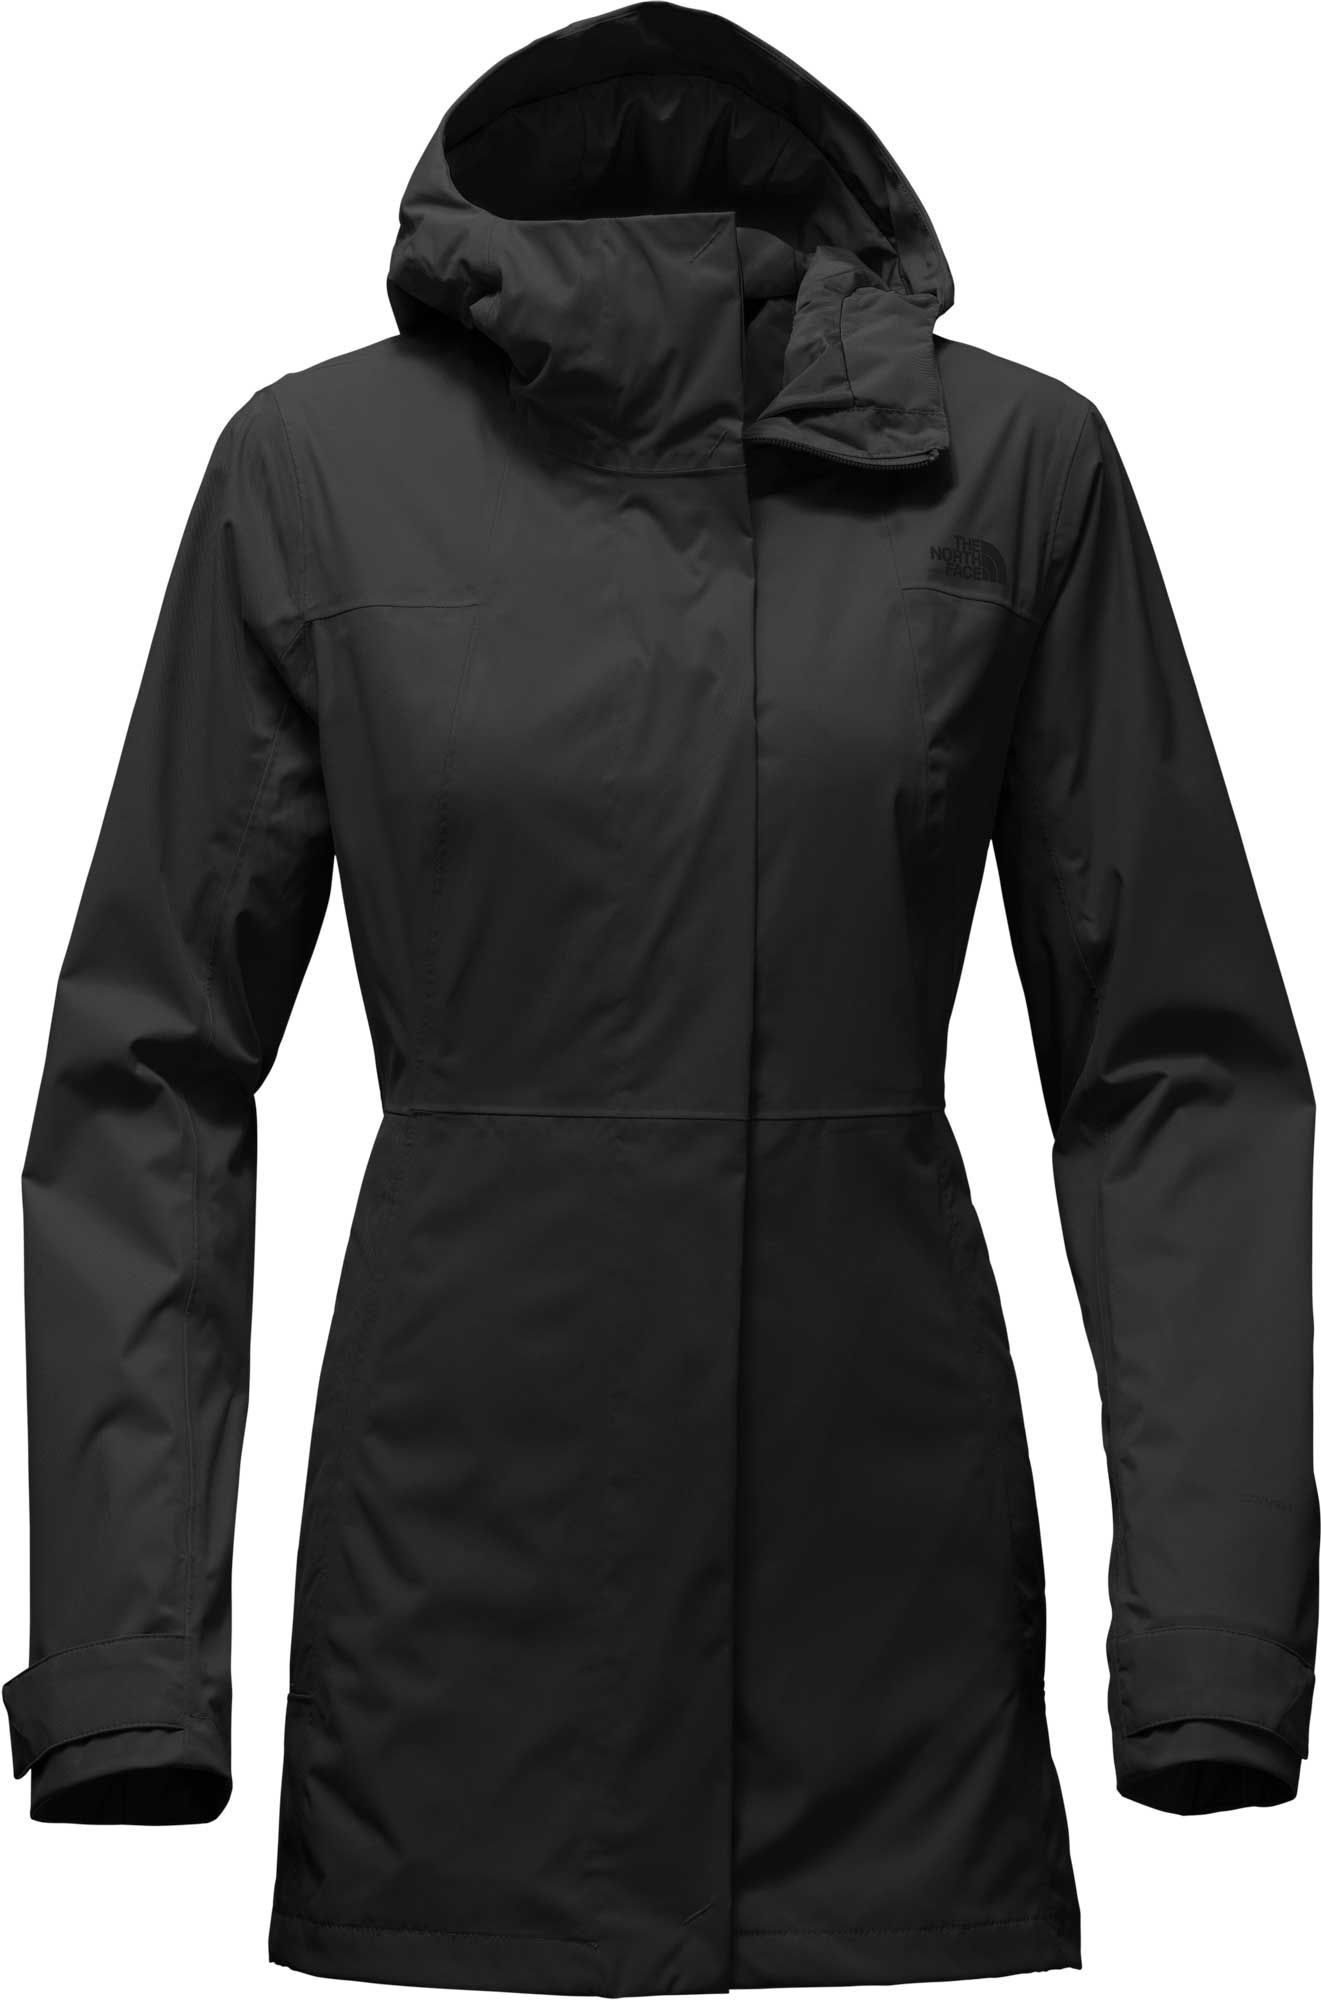 44ee73937 The North Face Women's City Midi Trench Rain Jacket | Products ...